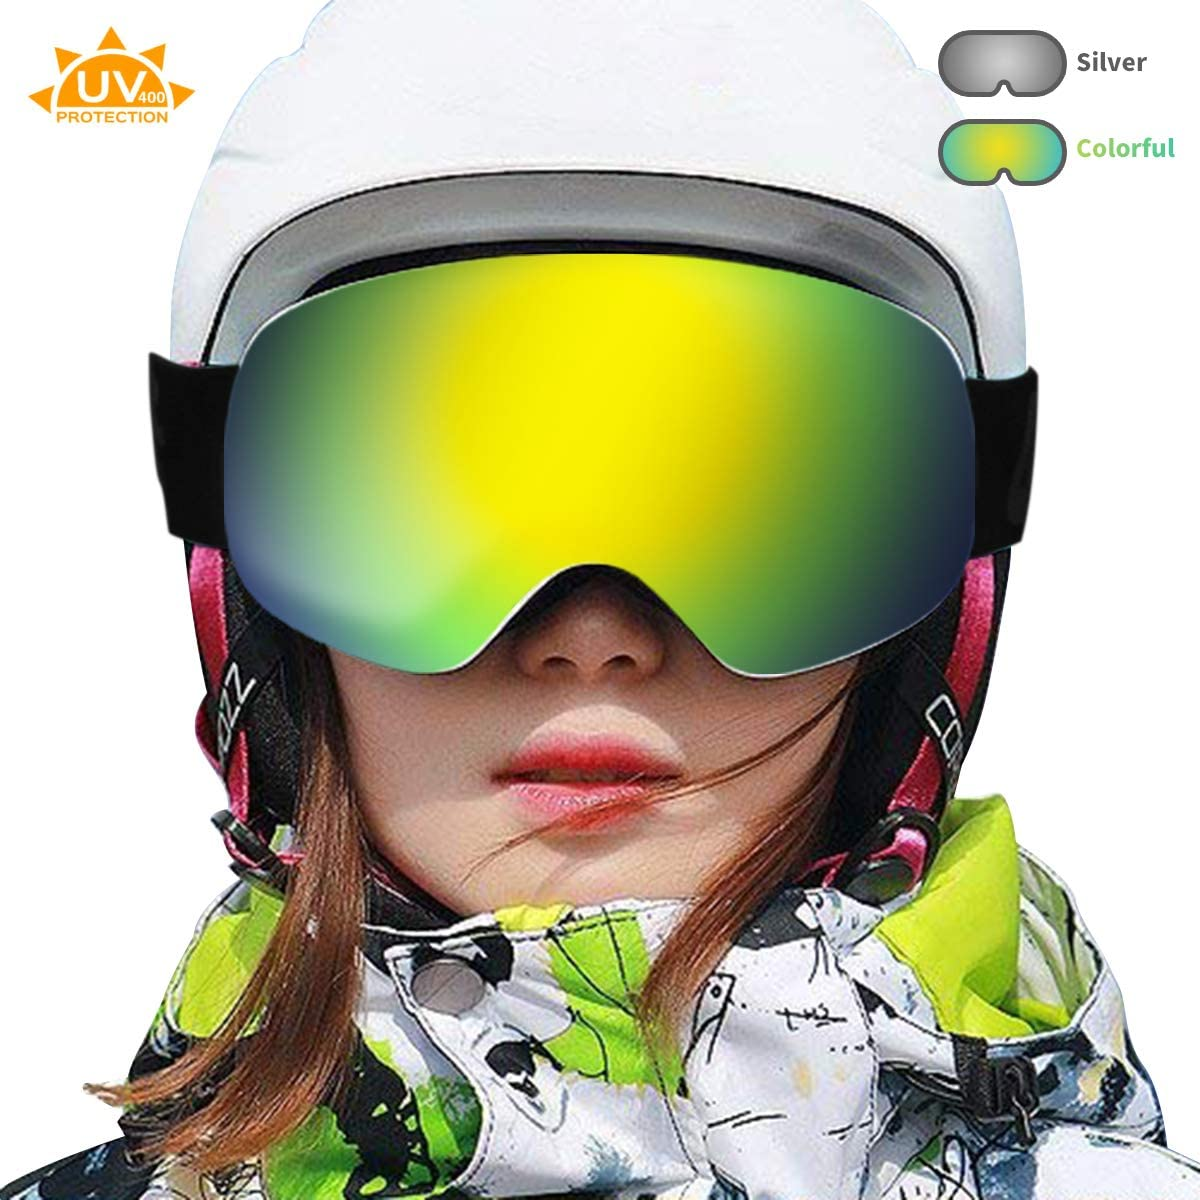 Acehome Adult OTG Helmet Compatible Ski Goggles for Skiing Snowboarding Snowmobile Skating Winter Sports, 100 UV400 Protection Anti-Fog Windproof Anti Glare